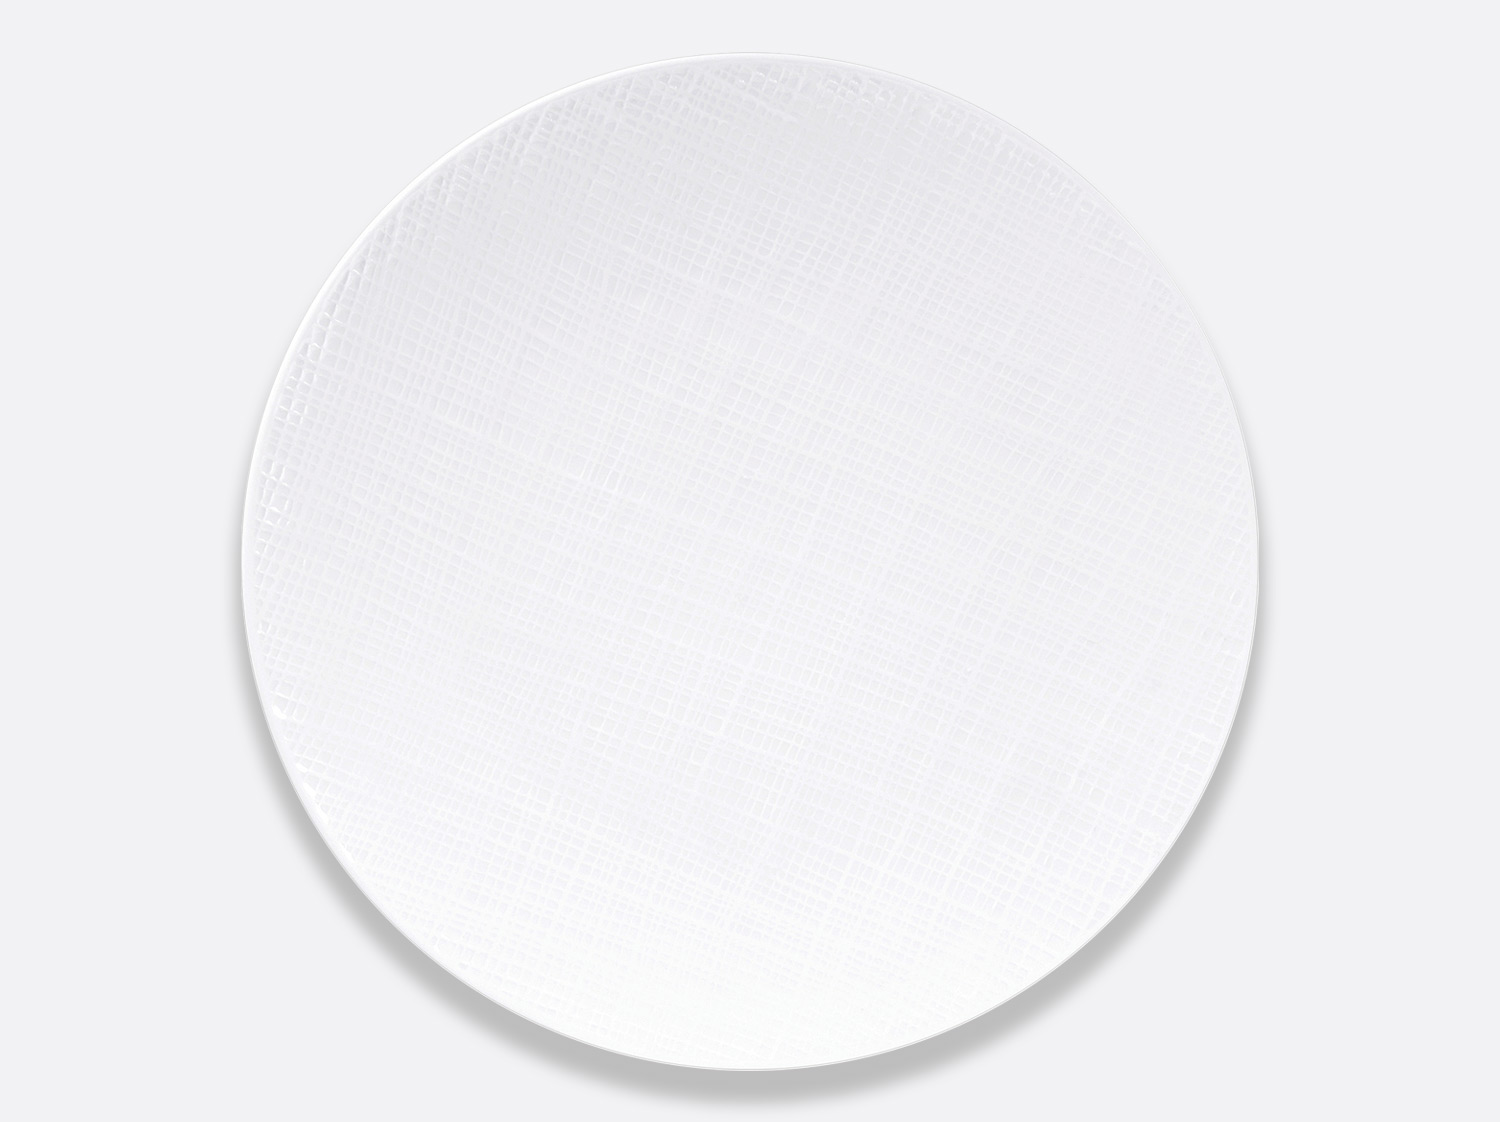 China Coupe plate 29.5 cm of the collection Organza | Bernardaud